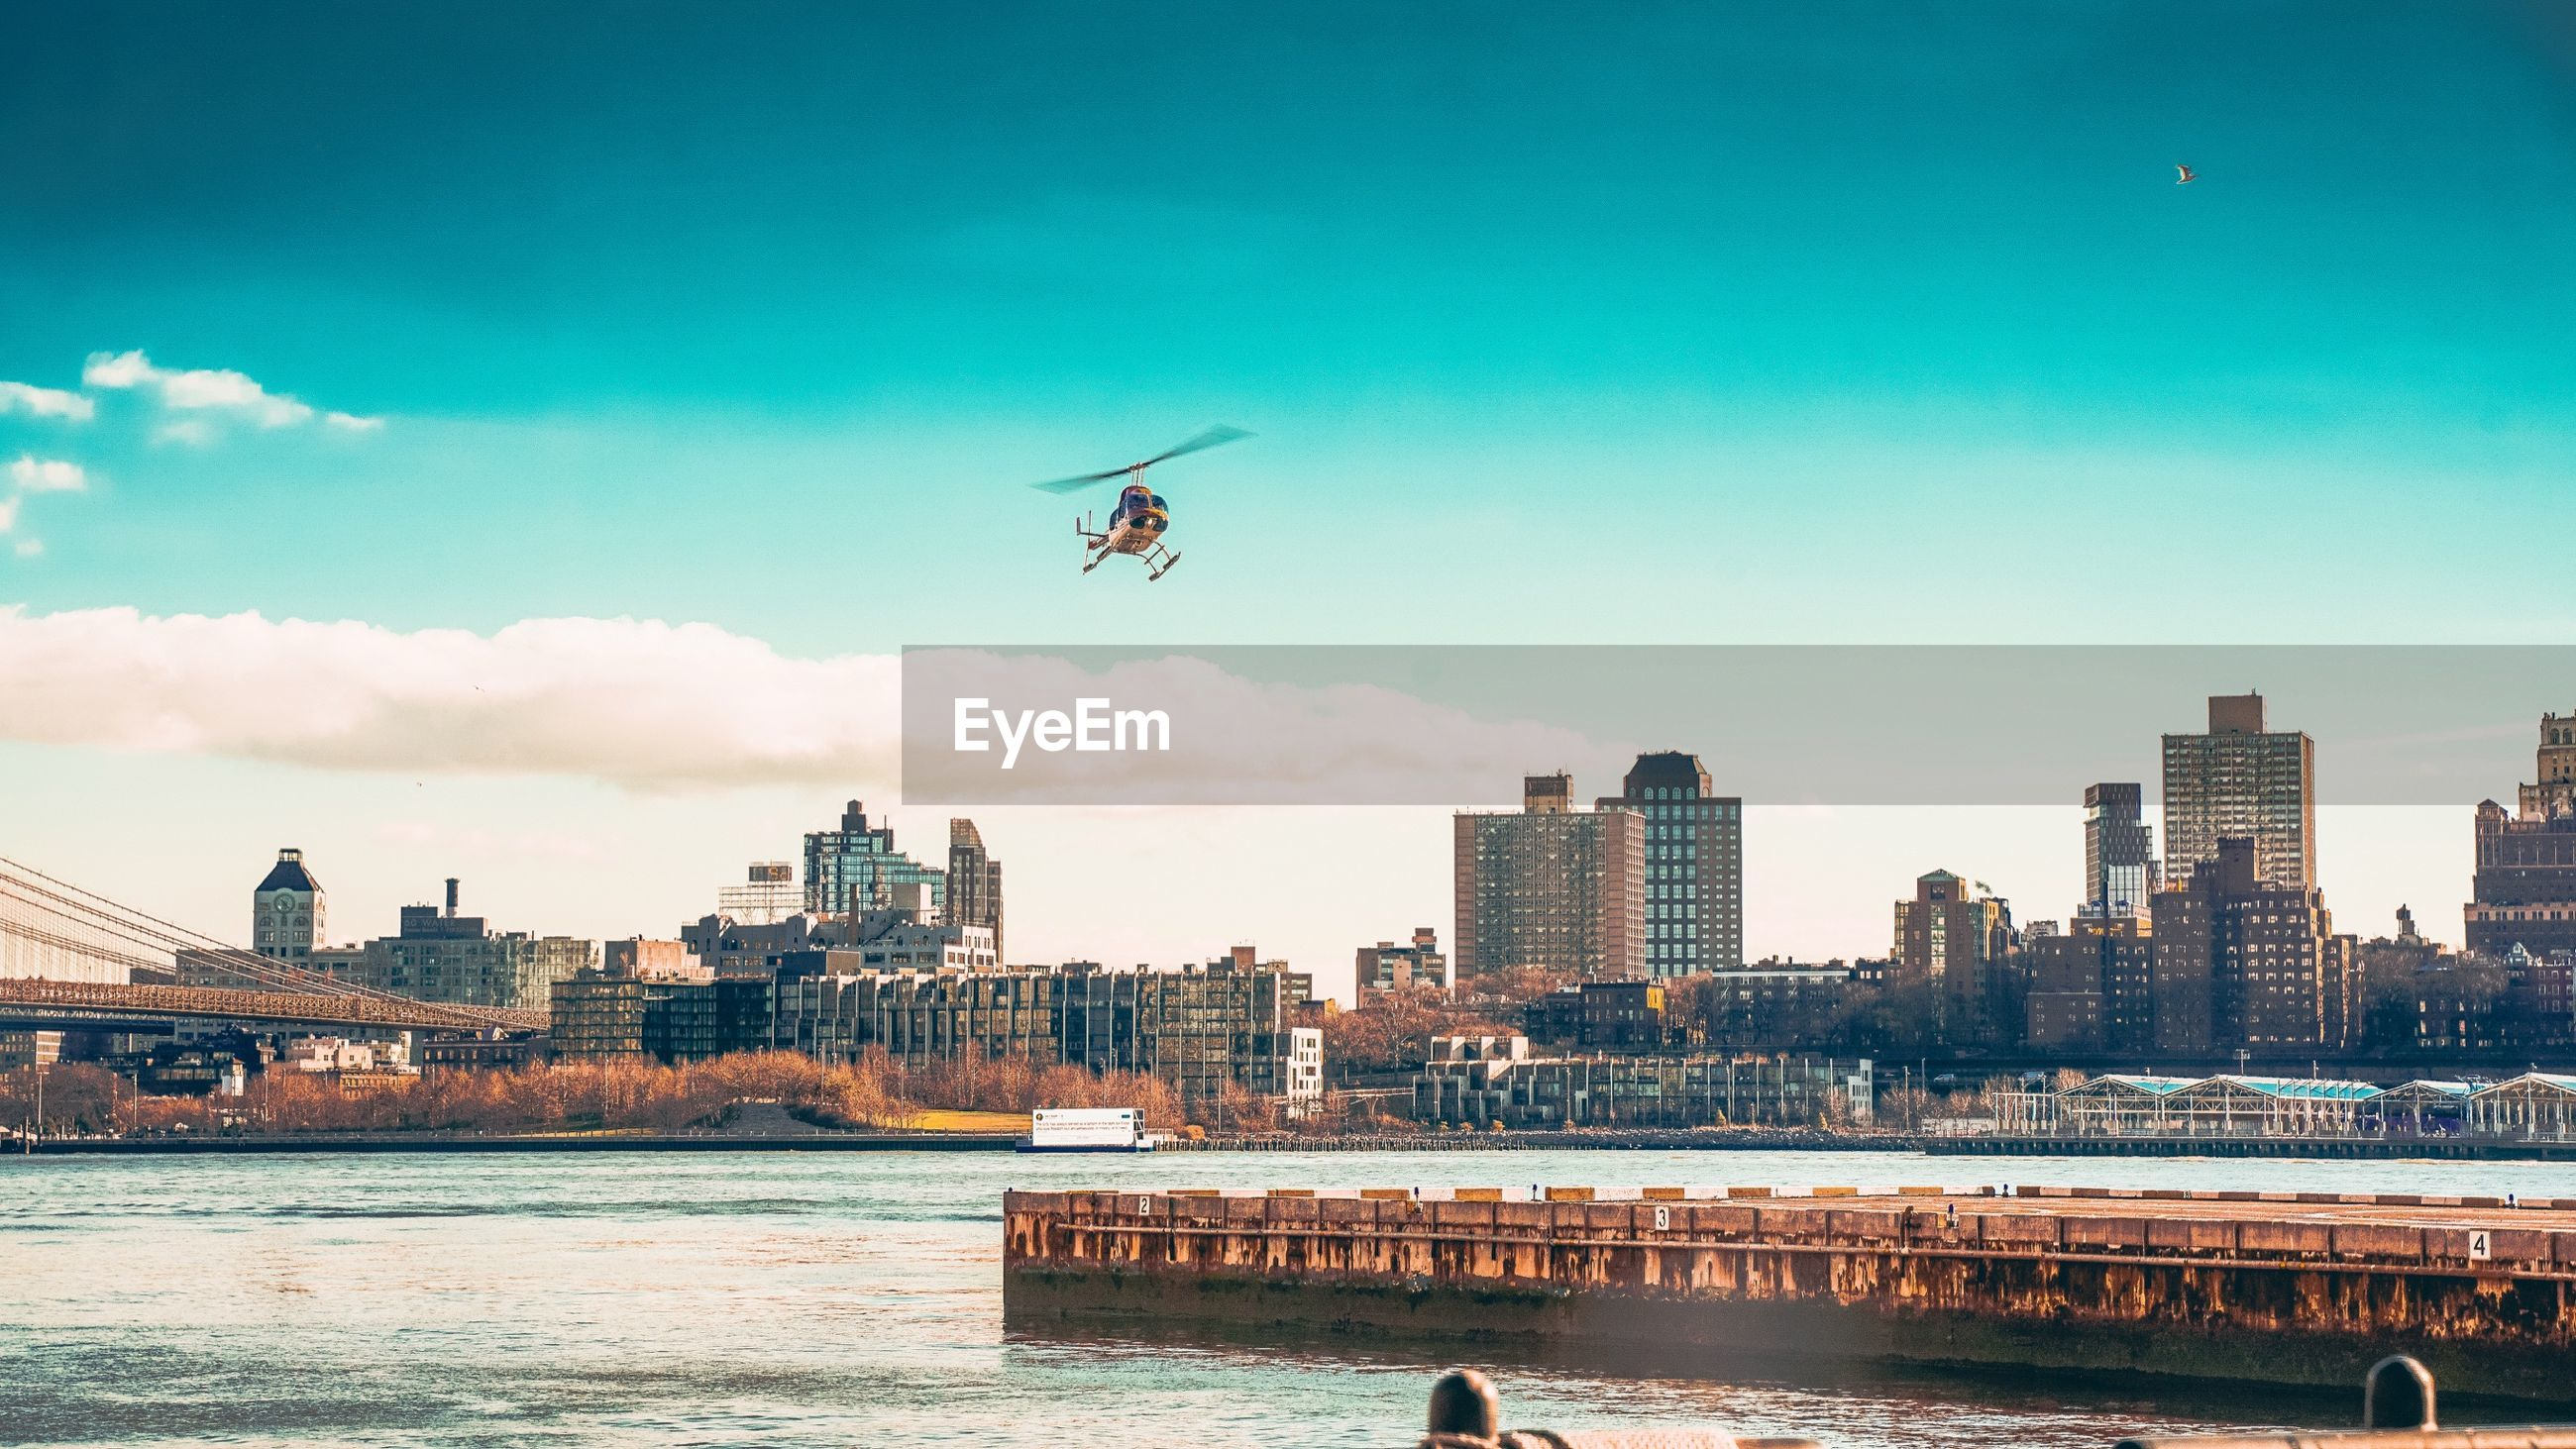 Helicopter flying over river in city against sky